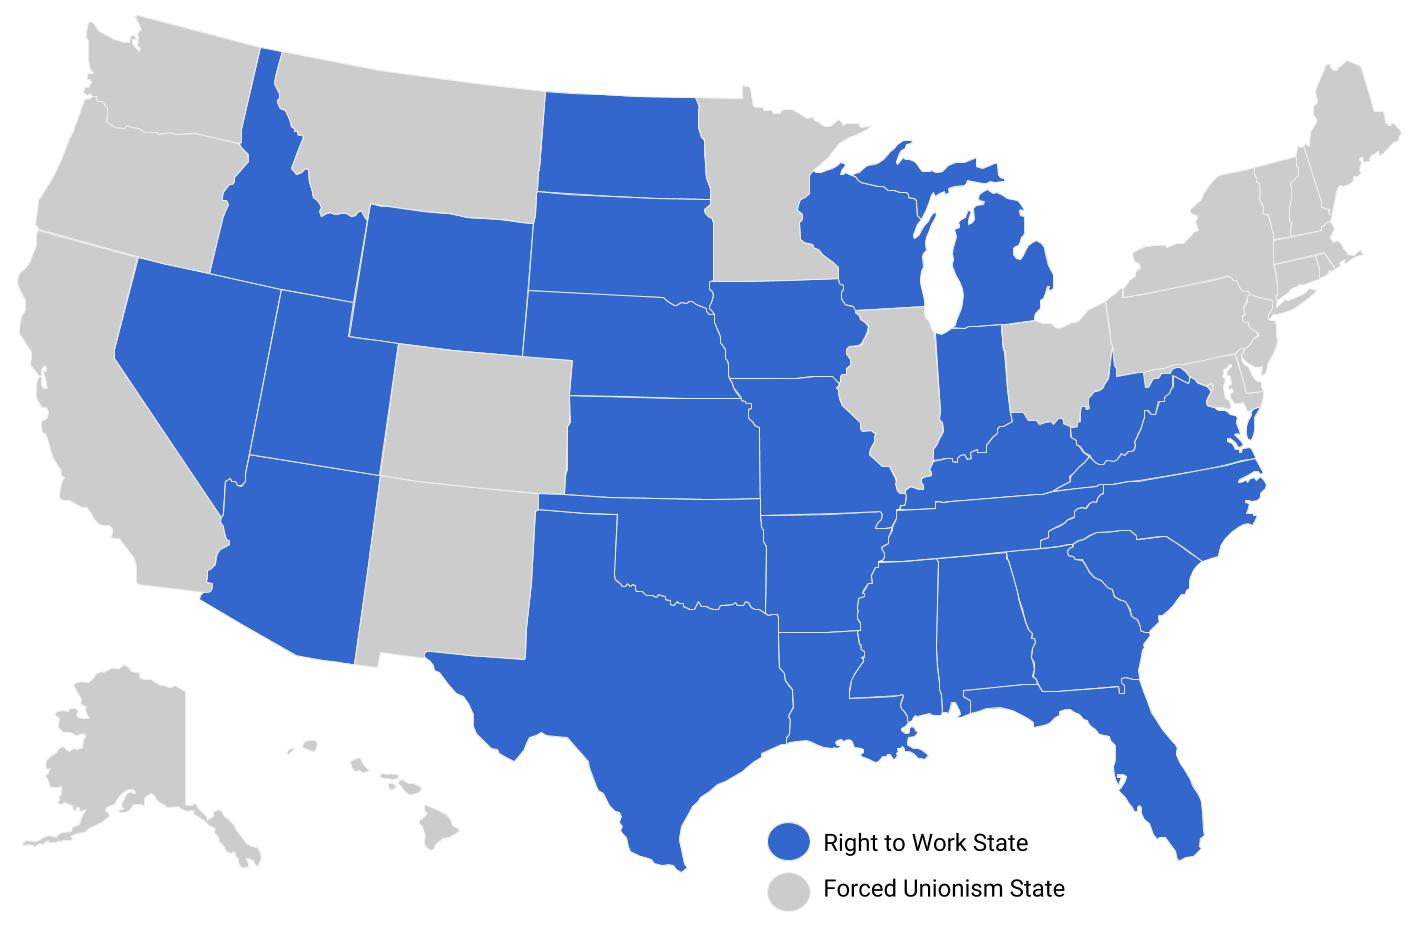 National Right to Work Foundation » Right to Work States